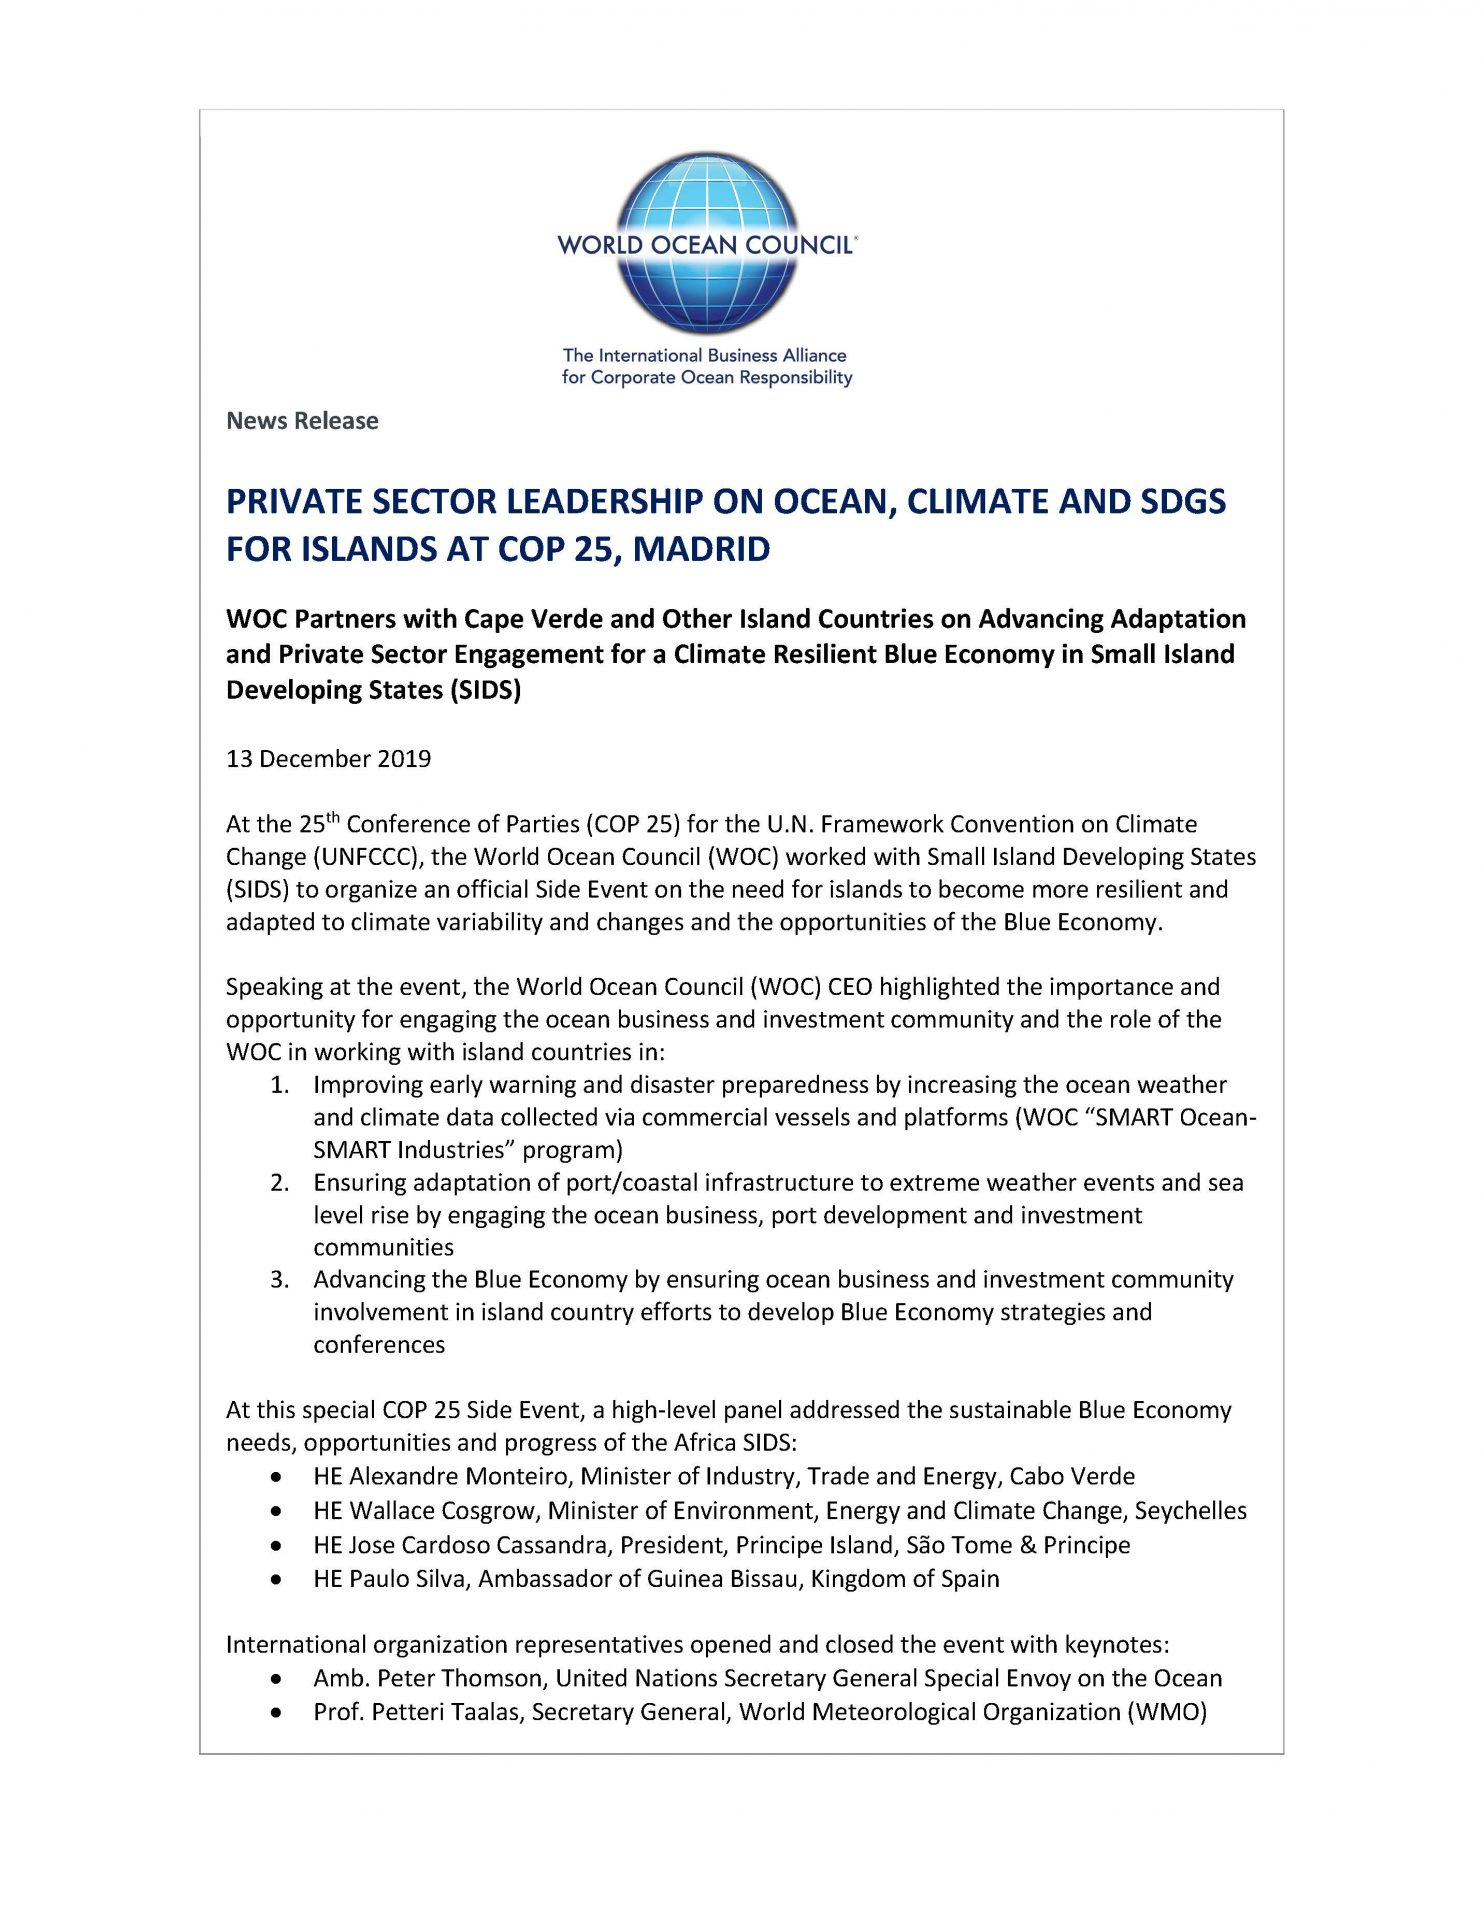 Private Sector Leadership on Ocean, Climate and SDGs for Islands - 13 December 2019